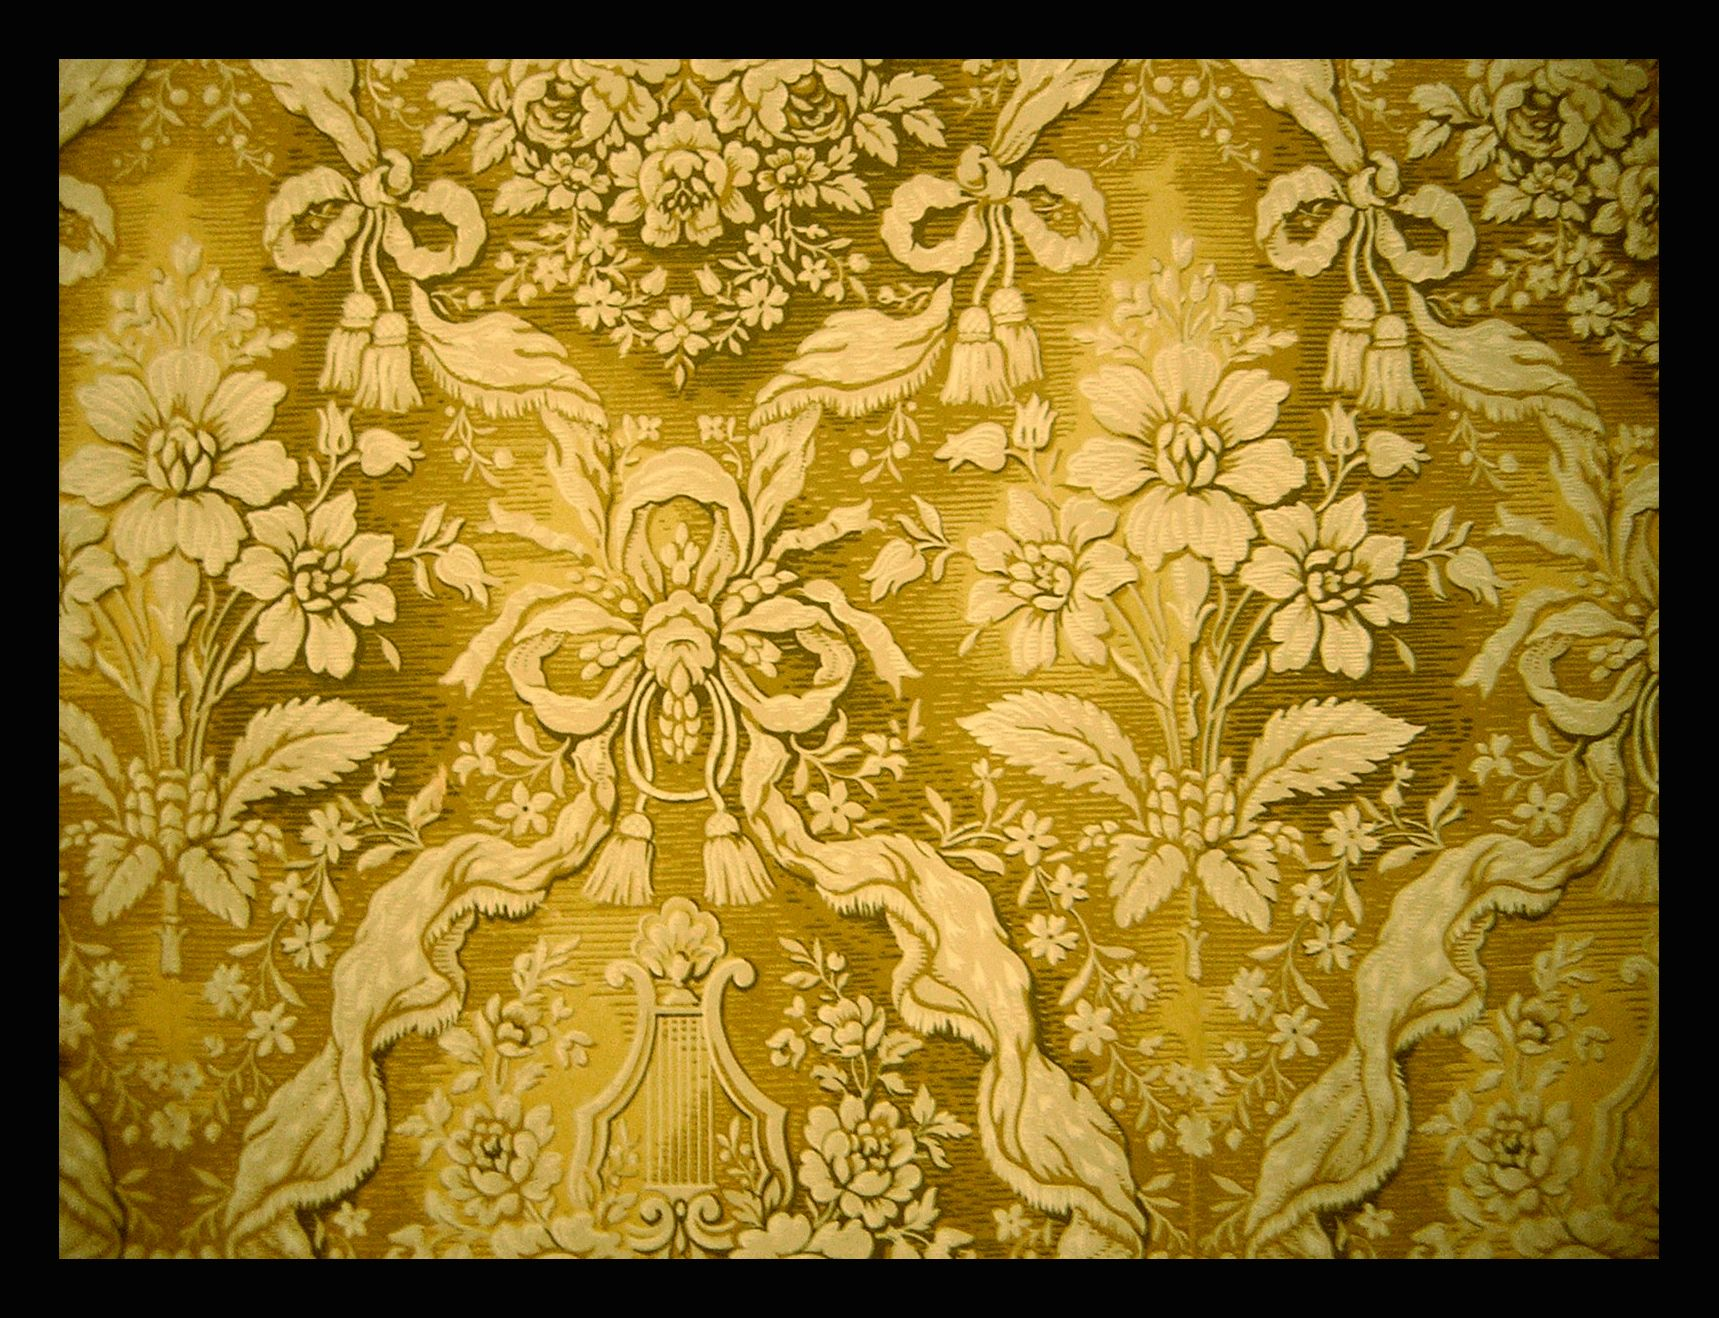 palace wall texture #gold #ornate #fabric #textured | opulence